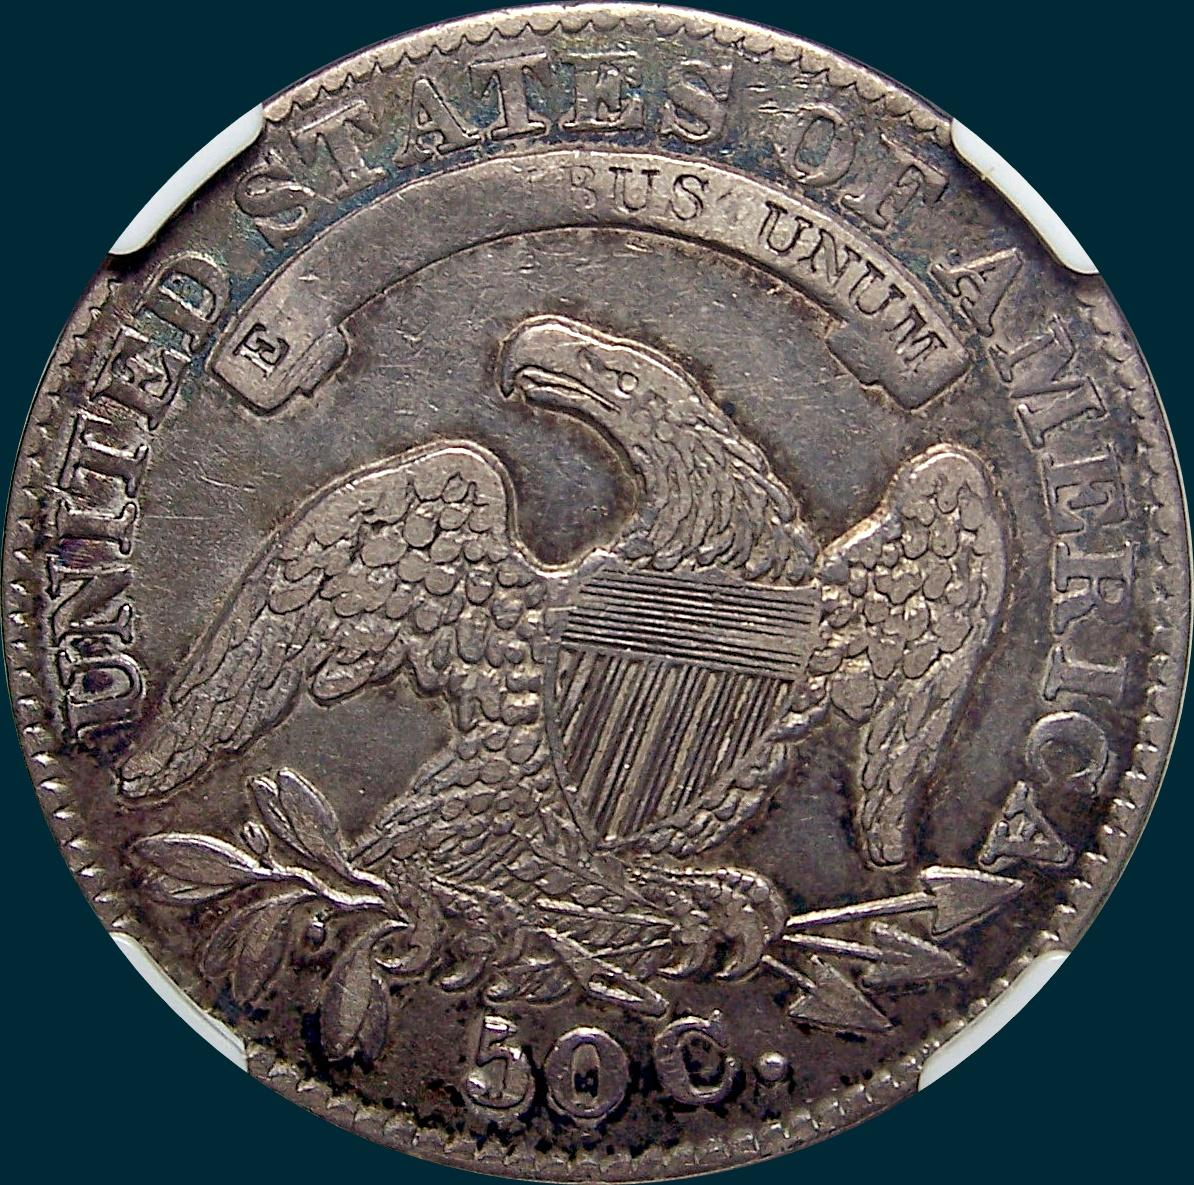 1832 O-114 capped bust half dollar